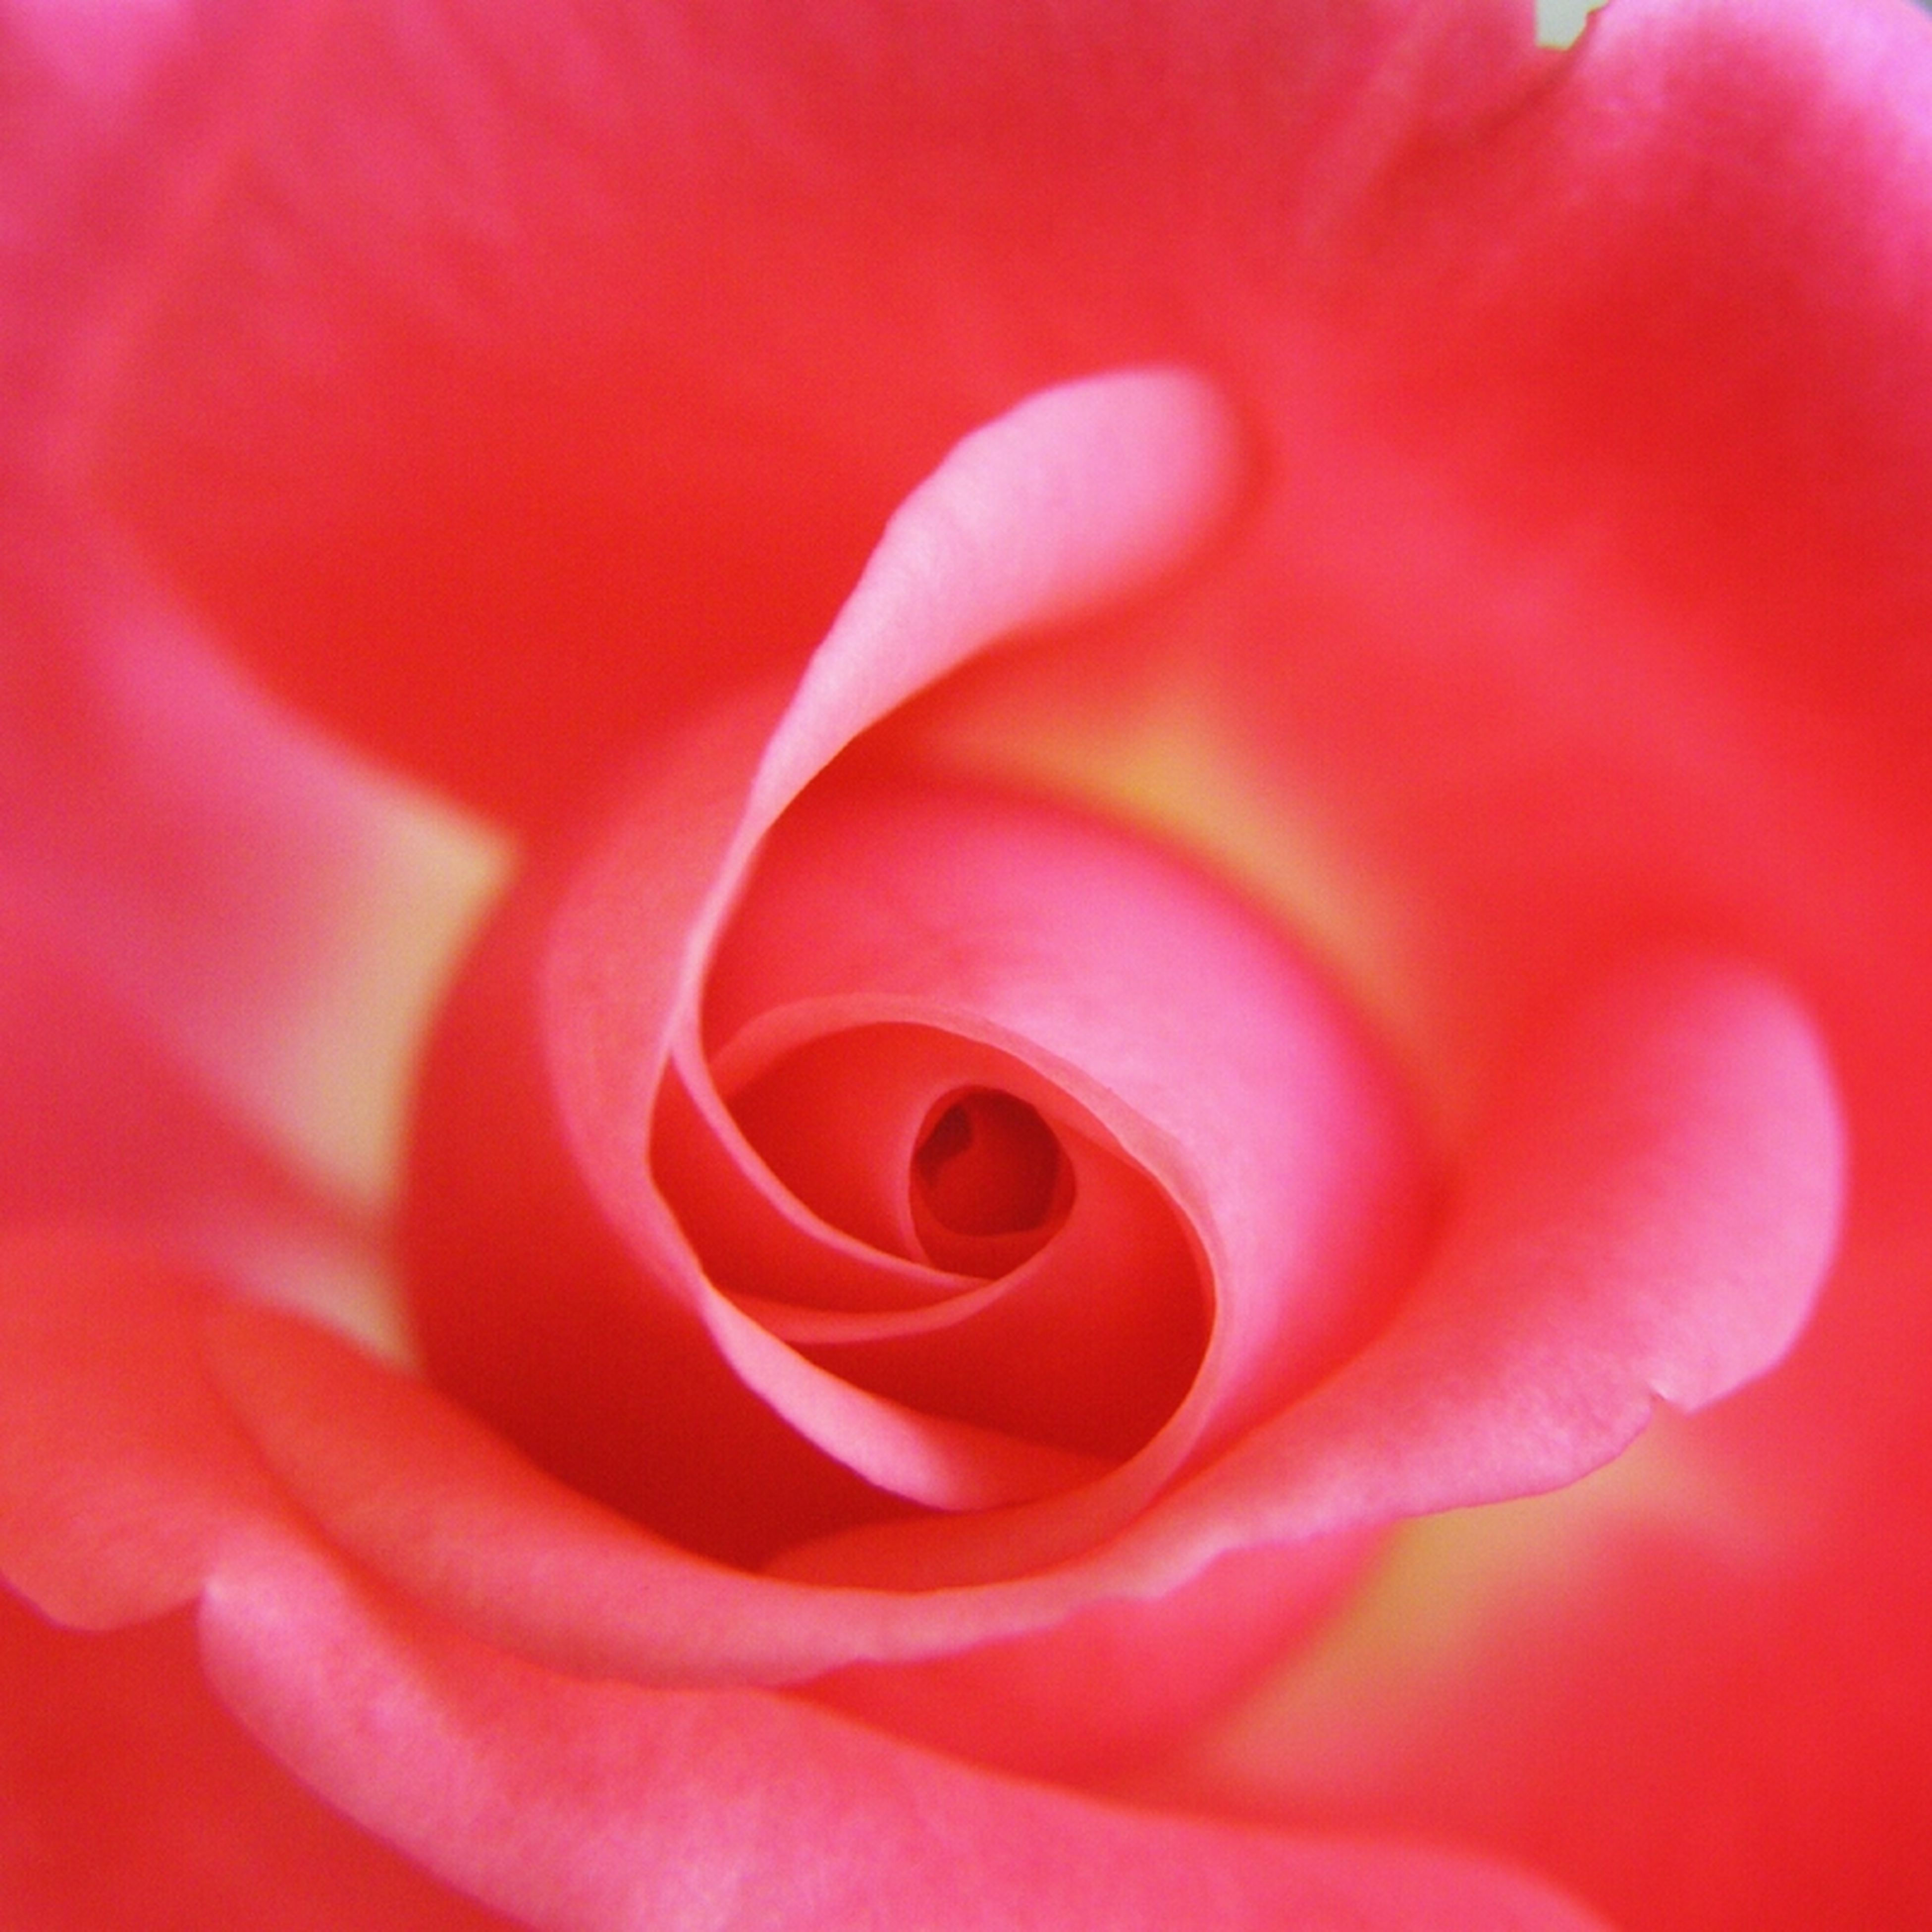 flower, petal, flower head, freshness, fragility, beauty in nature, single flower, full frame, growth, backgrounds, close-up, red, nature, pink color, rose - flower, natural pattern, blooming, macro, extreme close-up, in bloom